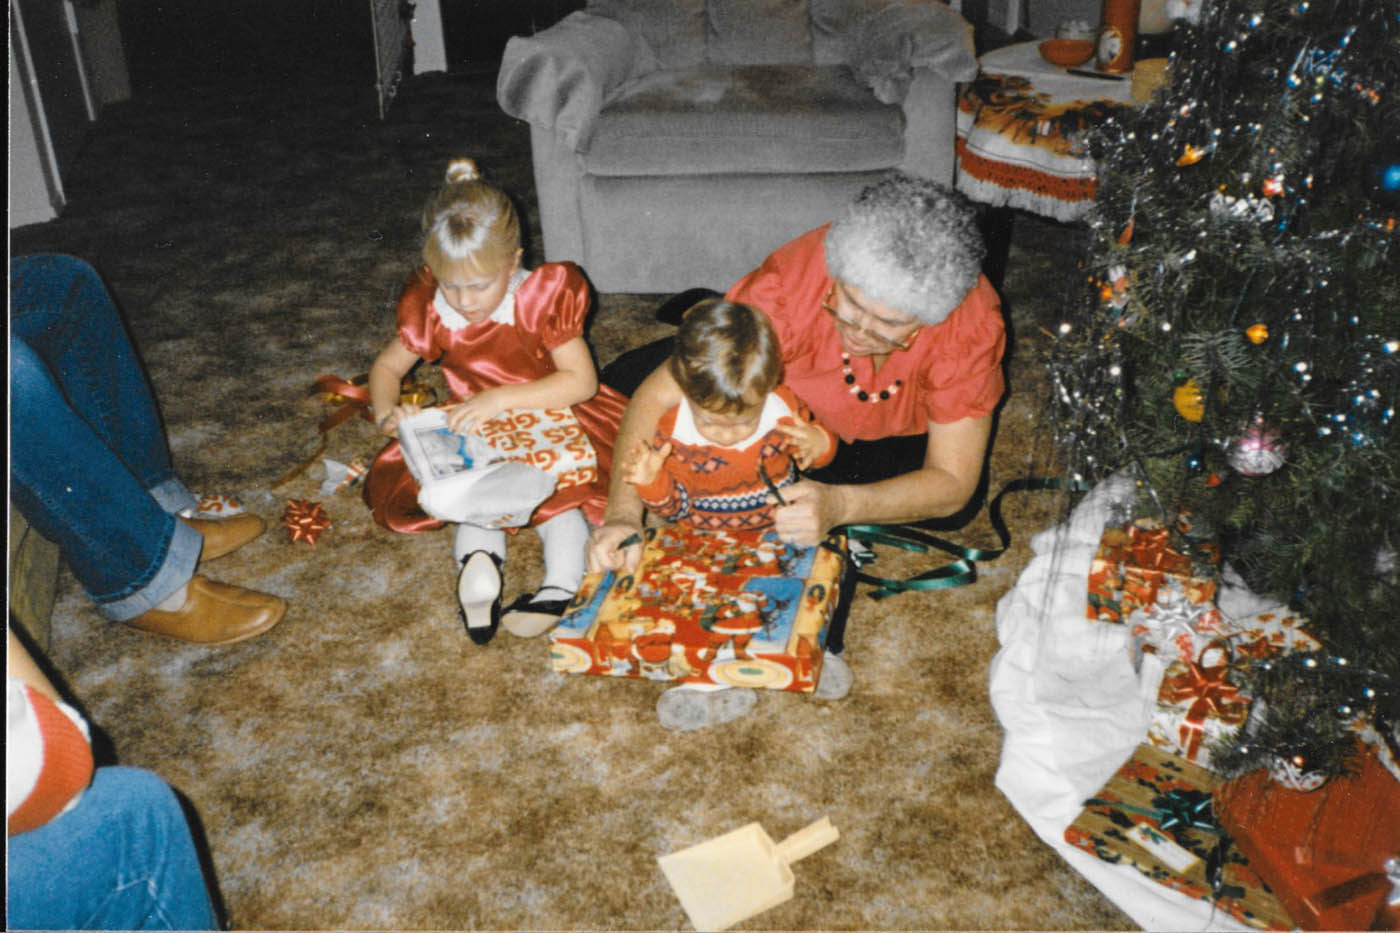 Family holiday traditions then & now